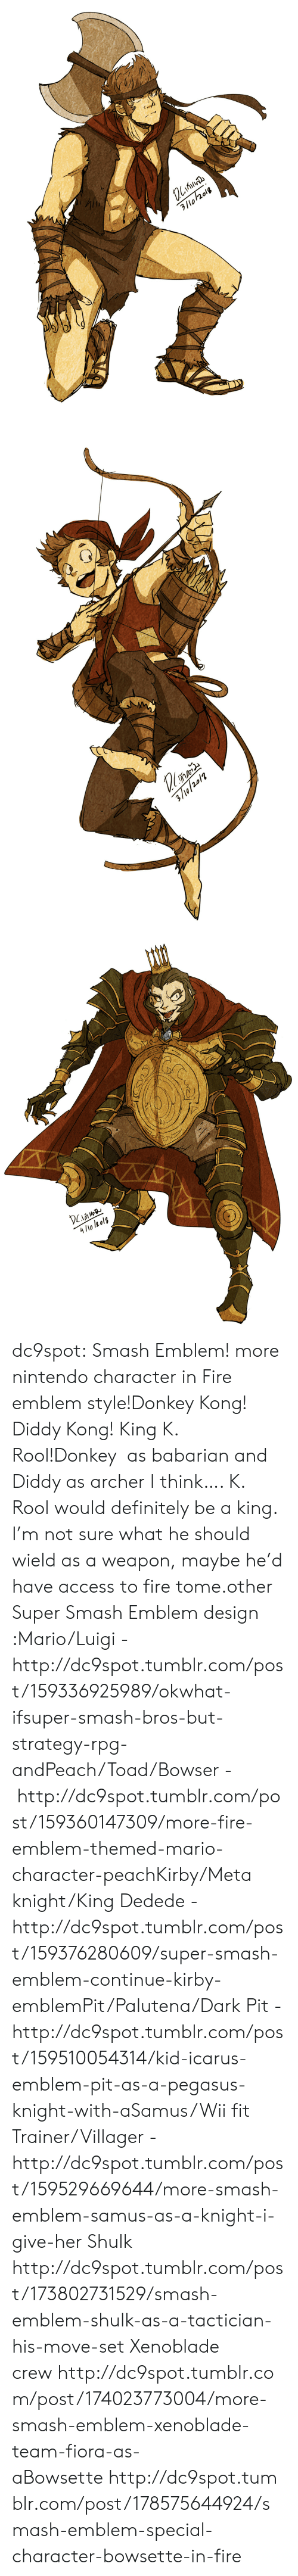 Smash Bros: 3/lo/2018   3/9/20/2   4/lo l2 olg dc9spot:  Smash Emblem! more nintendo character in Fire emblem style!Donkey Kong! Diddy Kong! King K. Rool!Donkey  as babarian and Diddy as archer I think…. K. Rool would definitely be a king. I'm not sure what he should wield as a weapon, maybe he'd have access to fire tome.other Super Smash Emblem design :Mario/Luigi - http://dc9spot.tumblr.com/post/159336925989/okwhat-ifsuper-smash-bros-but-strategy-rpg-andPeach/Toad/Bowser -  http://dc9spot.tumblr.com/post/159360147309/more-fire-emblem-themed-mario-character-peachKirby/Meta knight/King Dedede - http://dc9spot.tumblr.com/post/159376280609/super-smash-emblem-continue-kirby-emblemPit/Palutena/Dark Pit - http://dc9spot.tumblr.com/post/159510054314/kid-icarus-emblem-pit-as-a-pegasus-knight-with-aSamus/Wii fit Trainer/Villager - http://dc9spot.tumblr.com/post/159529669644/more-smash-emblem-samus-as-a-knight-i-give-her  Shulk http://dc9spot.tumblr.com/post/173802731529/smash-emblem-shulk-as-a-tactician-his-move-set  Xenoblade crew http://dc9spot.tumblr.com/post/174023773004/more-smash-emblem-xenoblade-team-fiora-as-aBowsette http://dc9spot.tumblr.com/post/178575644924/smash-emblem-special-character-bowsette-in-fire